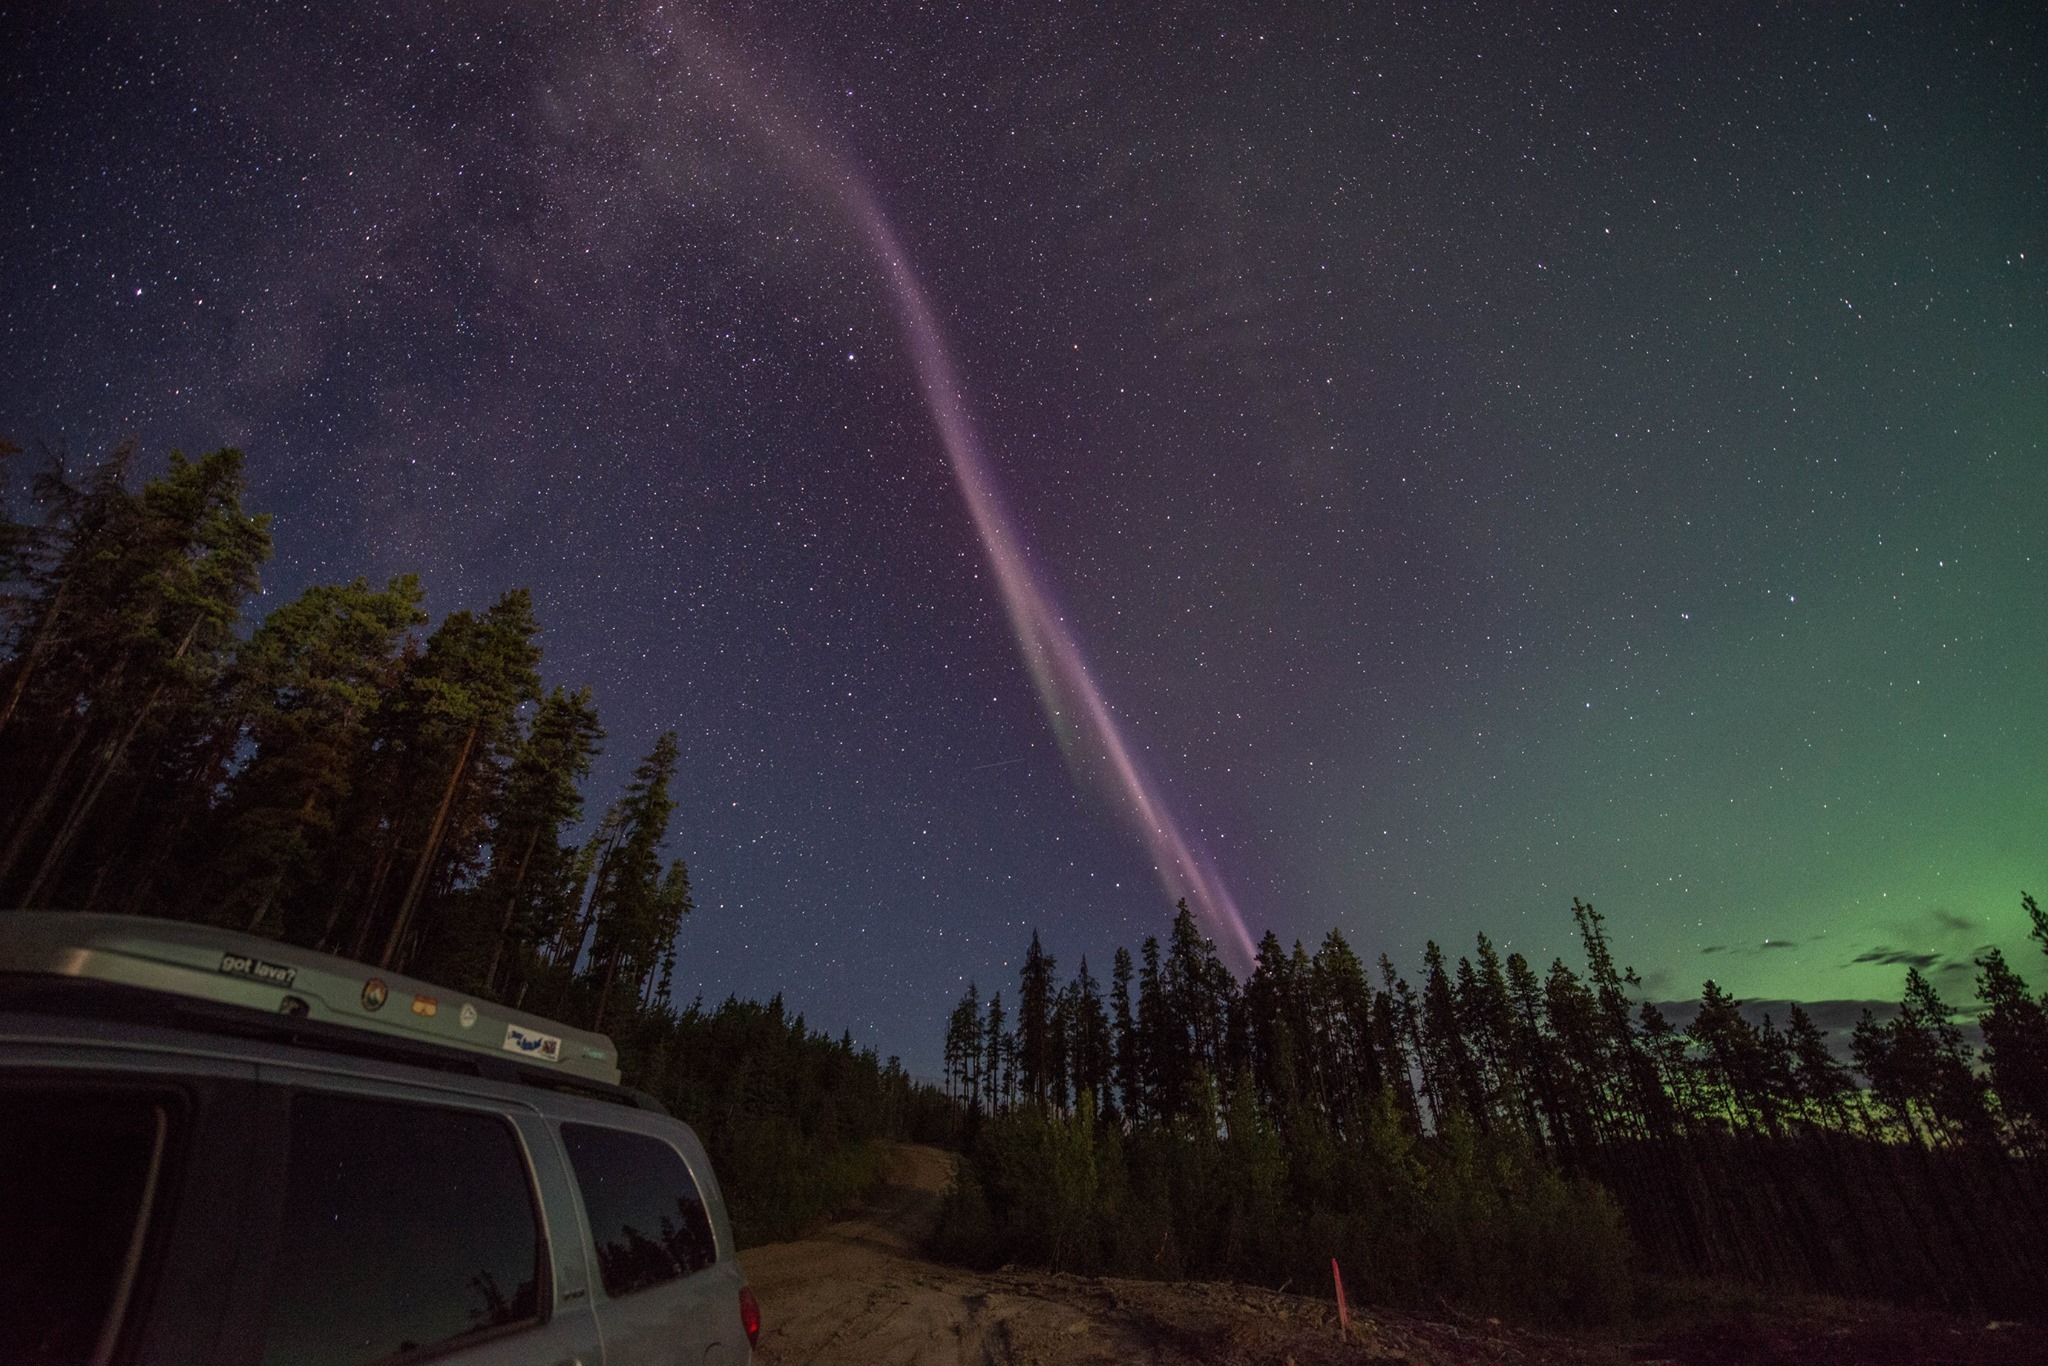 A pink Steve against a dark sky with green northern lights.